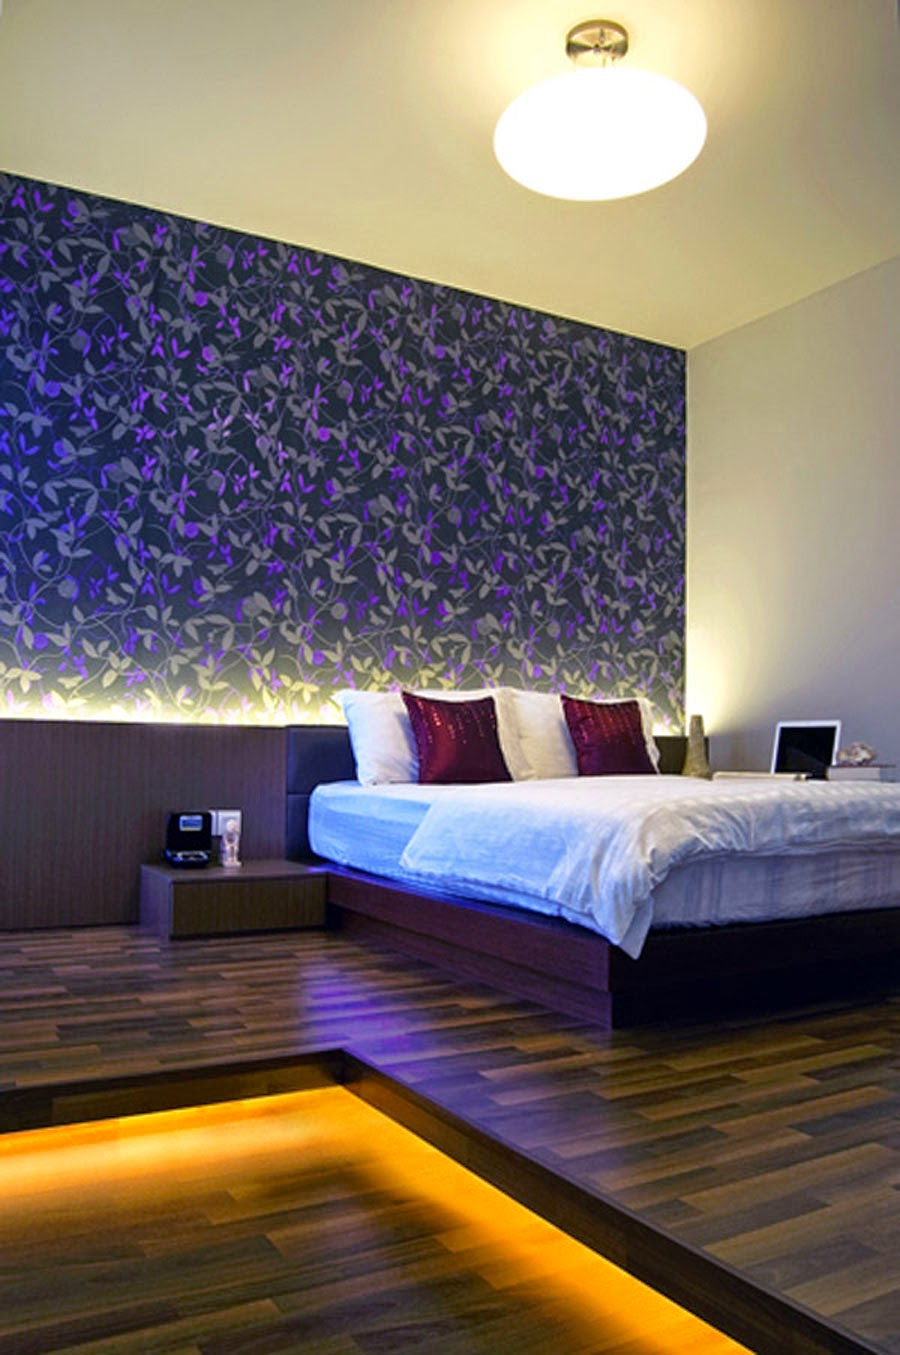 Small bedroom lighting ideas the interior designs - Wall designs bedroom ...